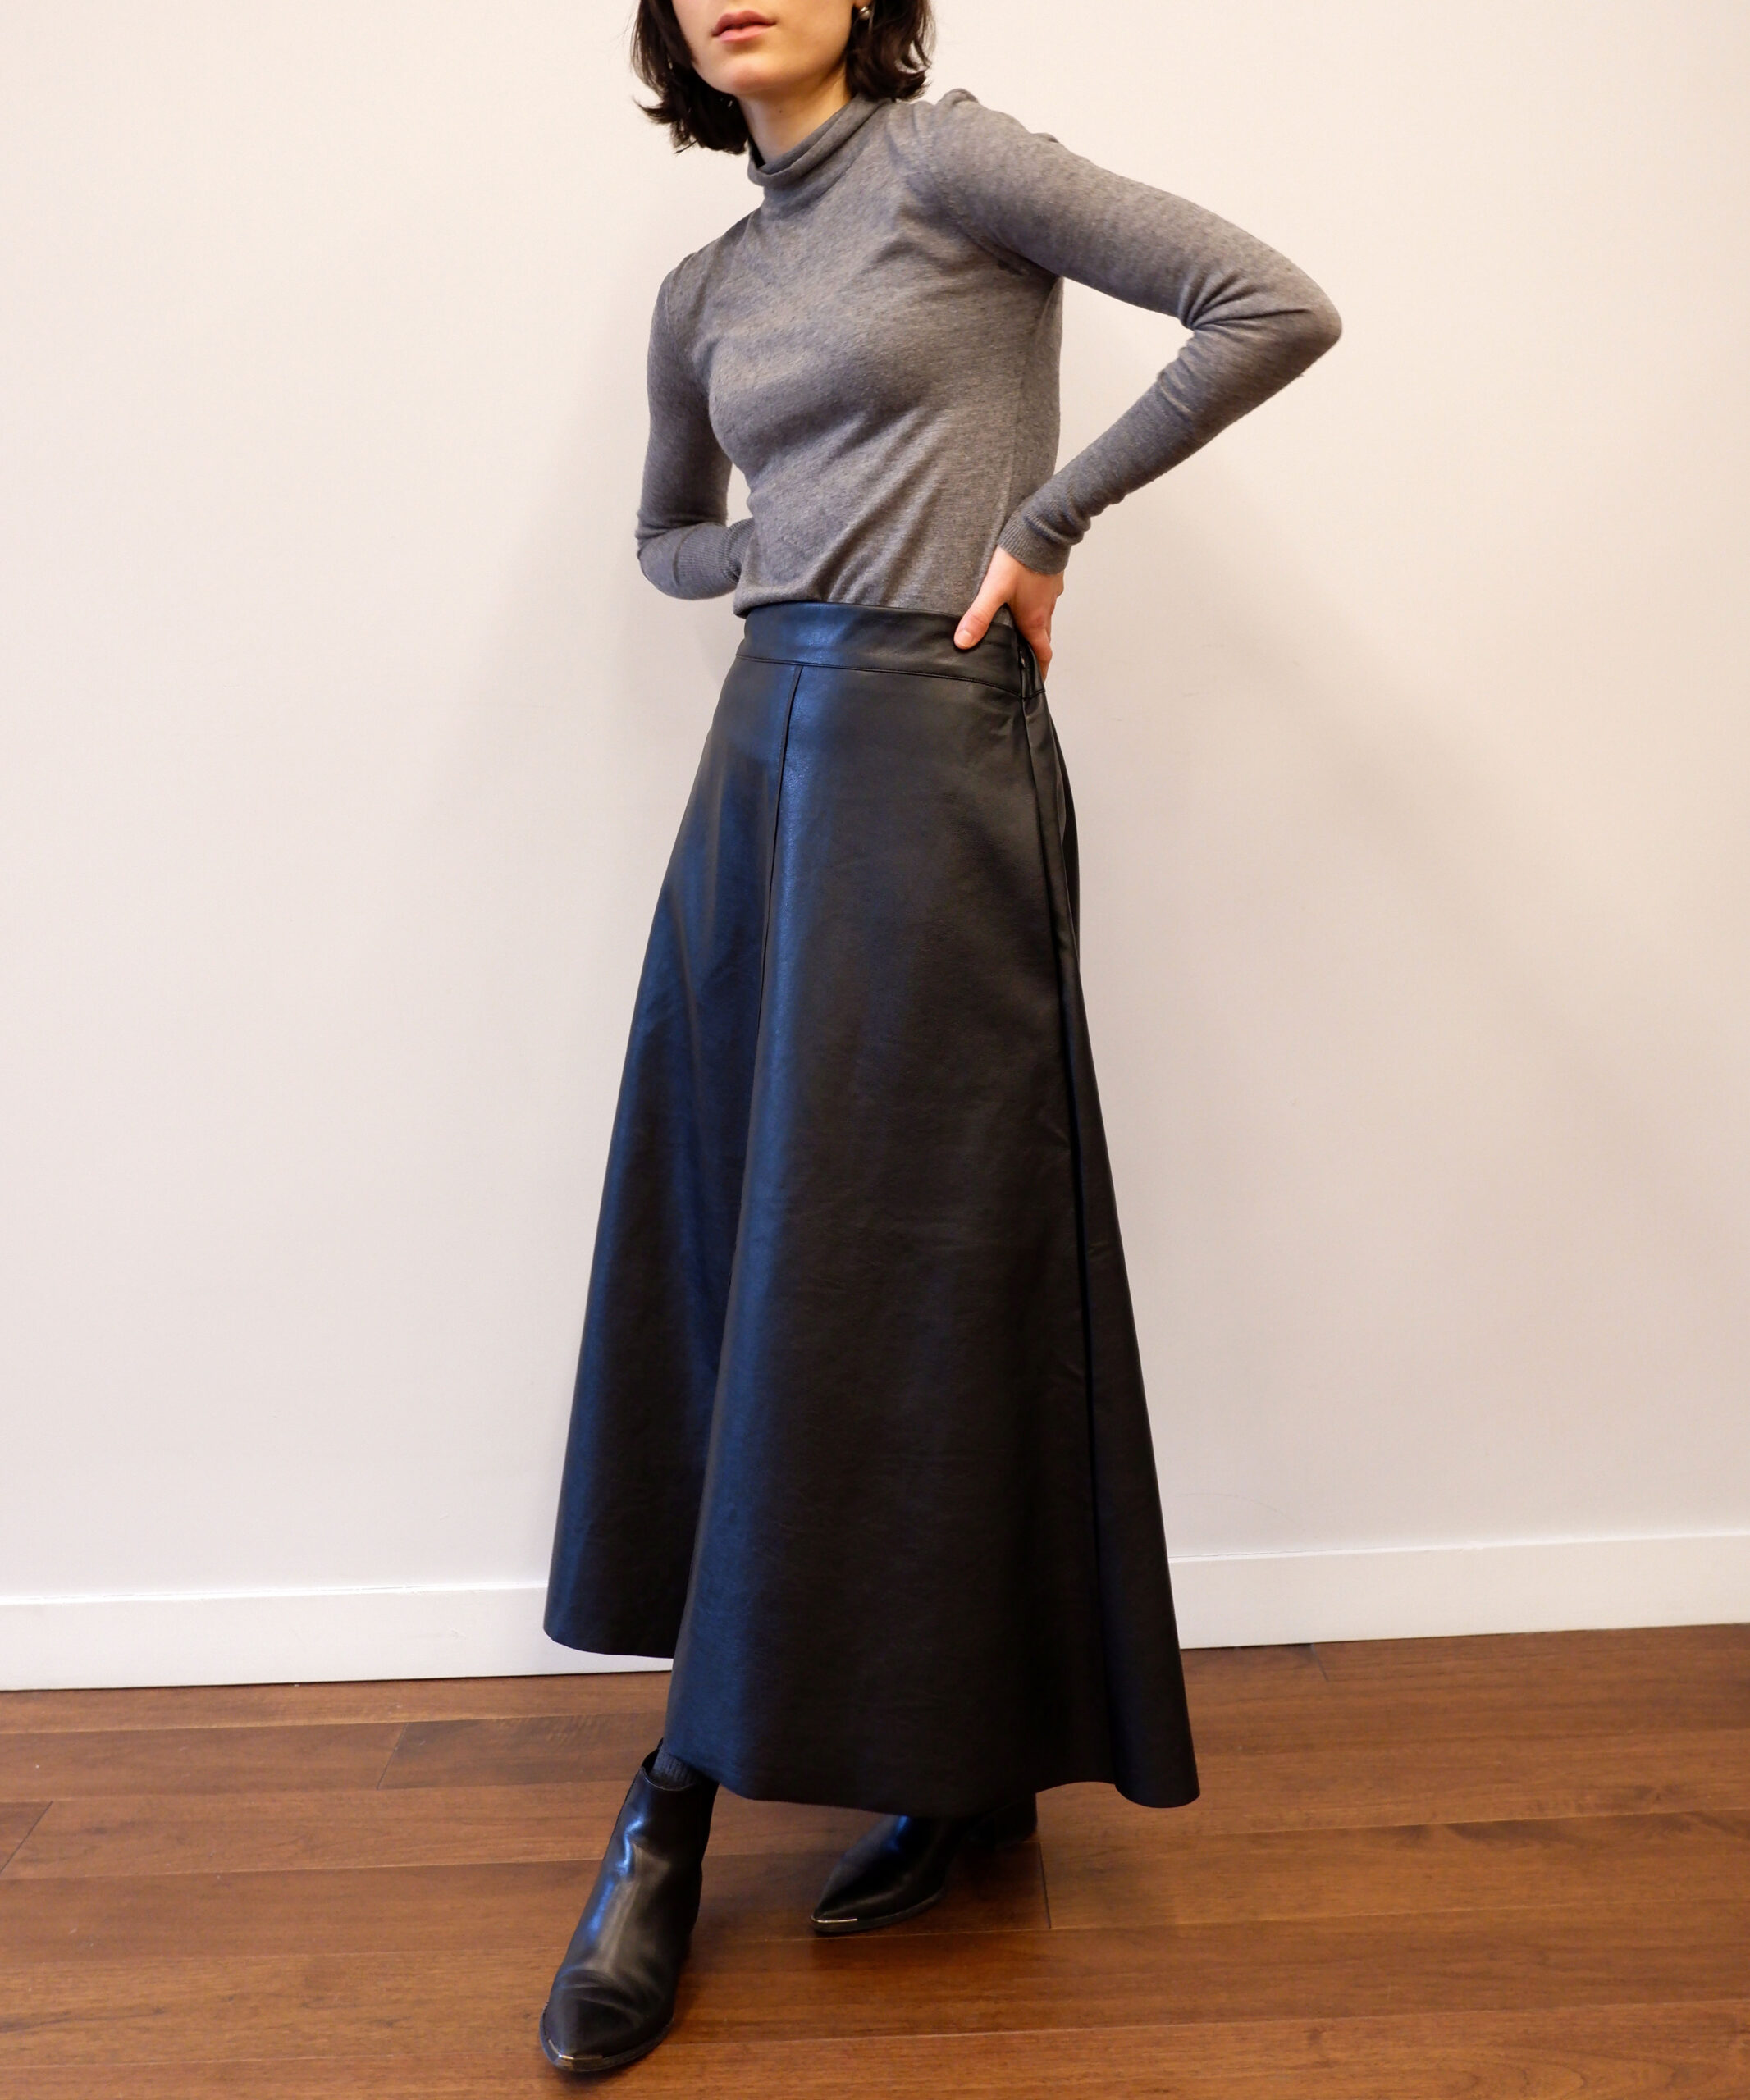 Black vegan leather midi skirt from The Dallant, Korean fashion online shopping site, fashion item for transitional weather in korea